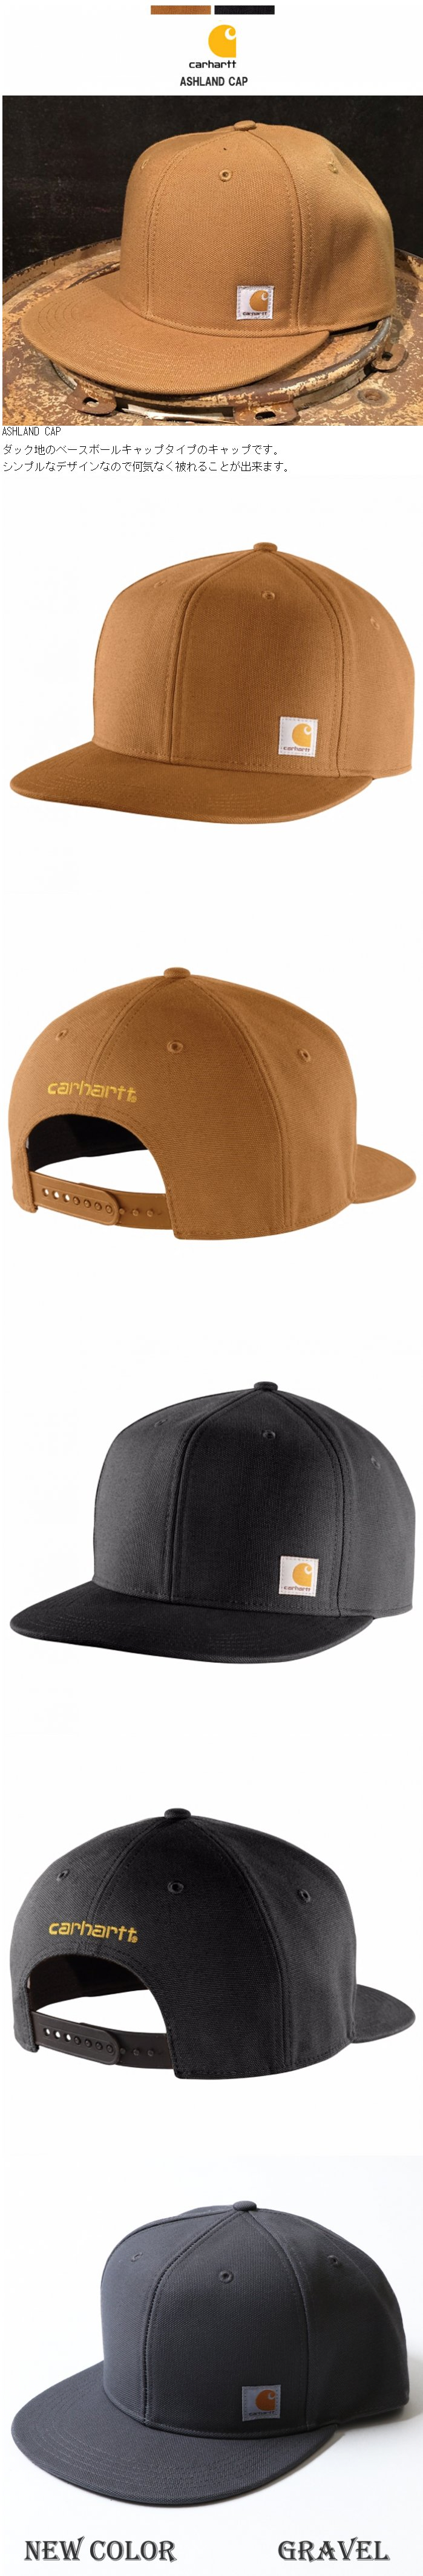 3c12999831cda MAVAZI IMPORT CLOTHING  Carhartt (car heart) Ashland cap  ASHLAND ...